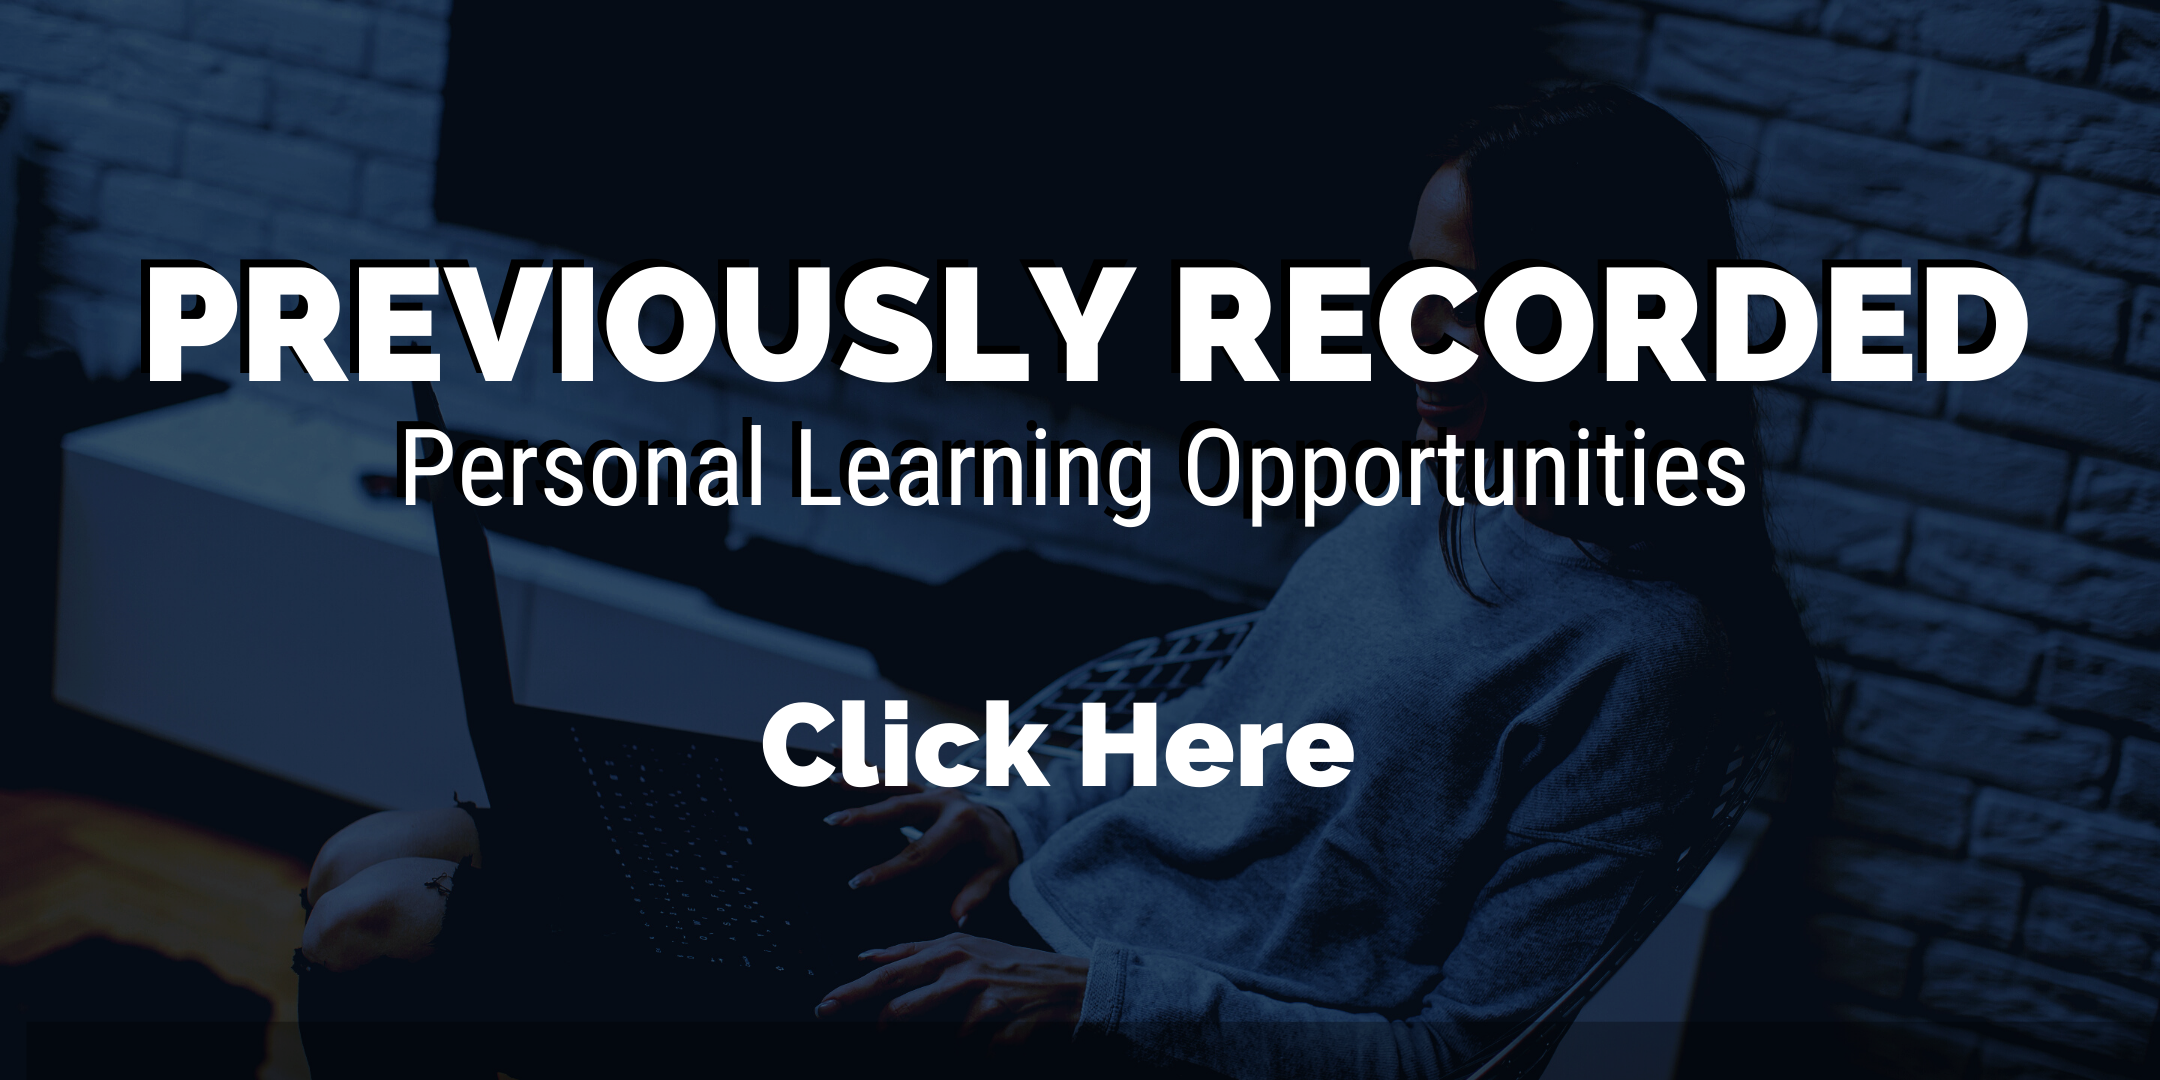 click here for previously recorded personal learning opportunities